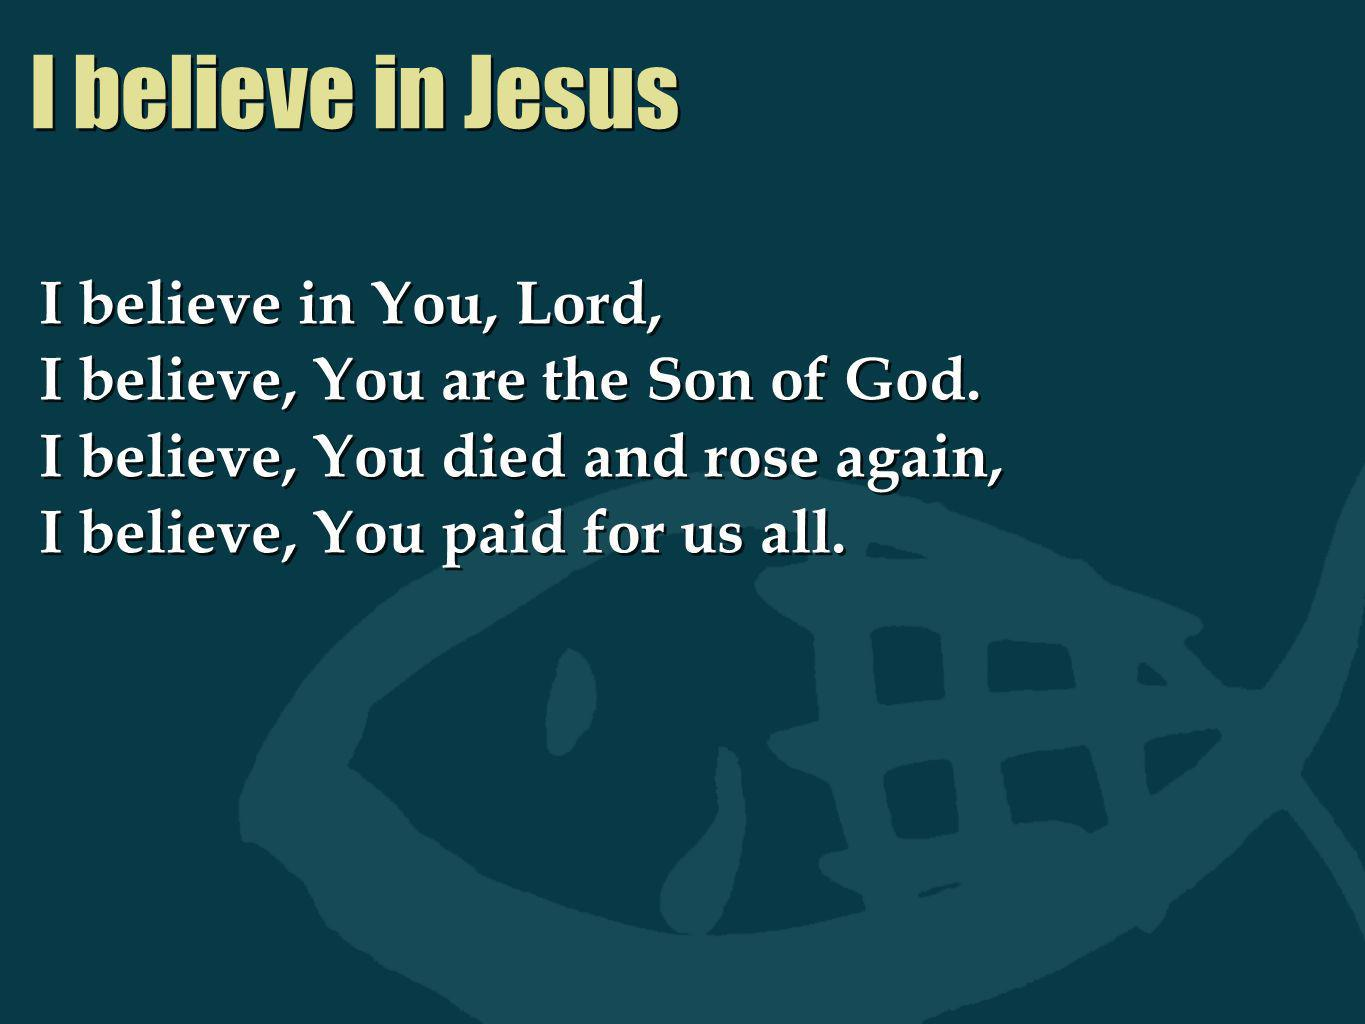 I believe in Jesus I believe in You, Lord, I believe, You are the Son of God. I believe, You died and rose again, I believe, You paid for us all. I be